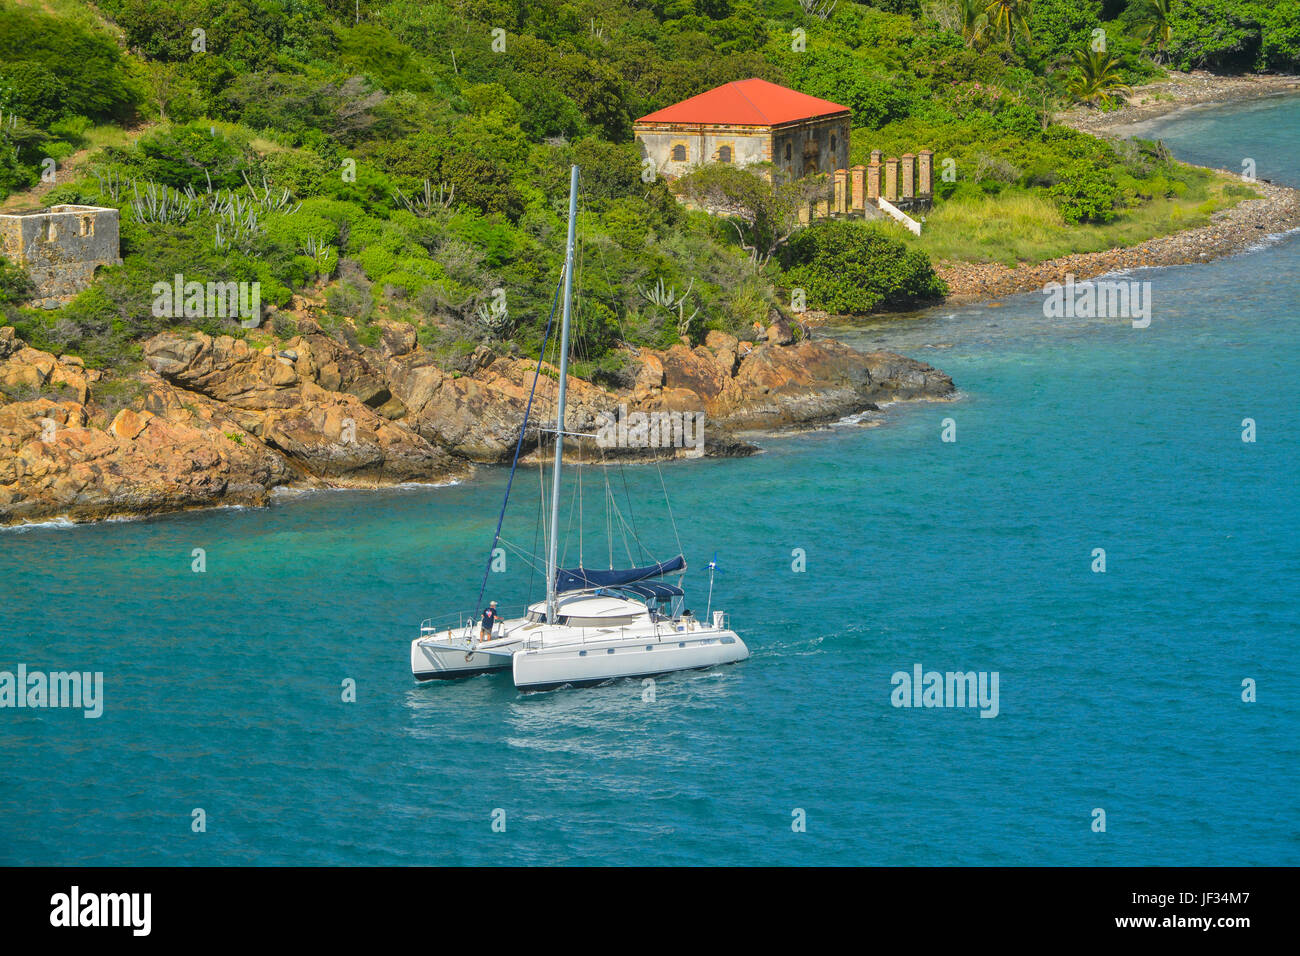 Catamaran sailing by Garrison House at Fort Willoughby on Hassel Island, St Thomas U.S. Virgin Islands. - Stock Image